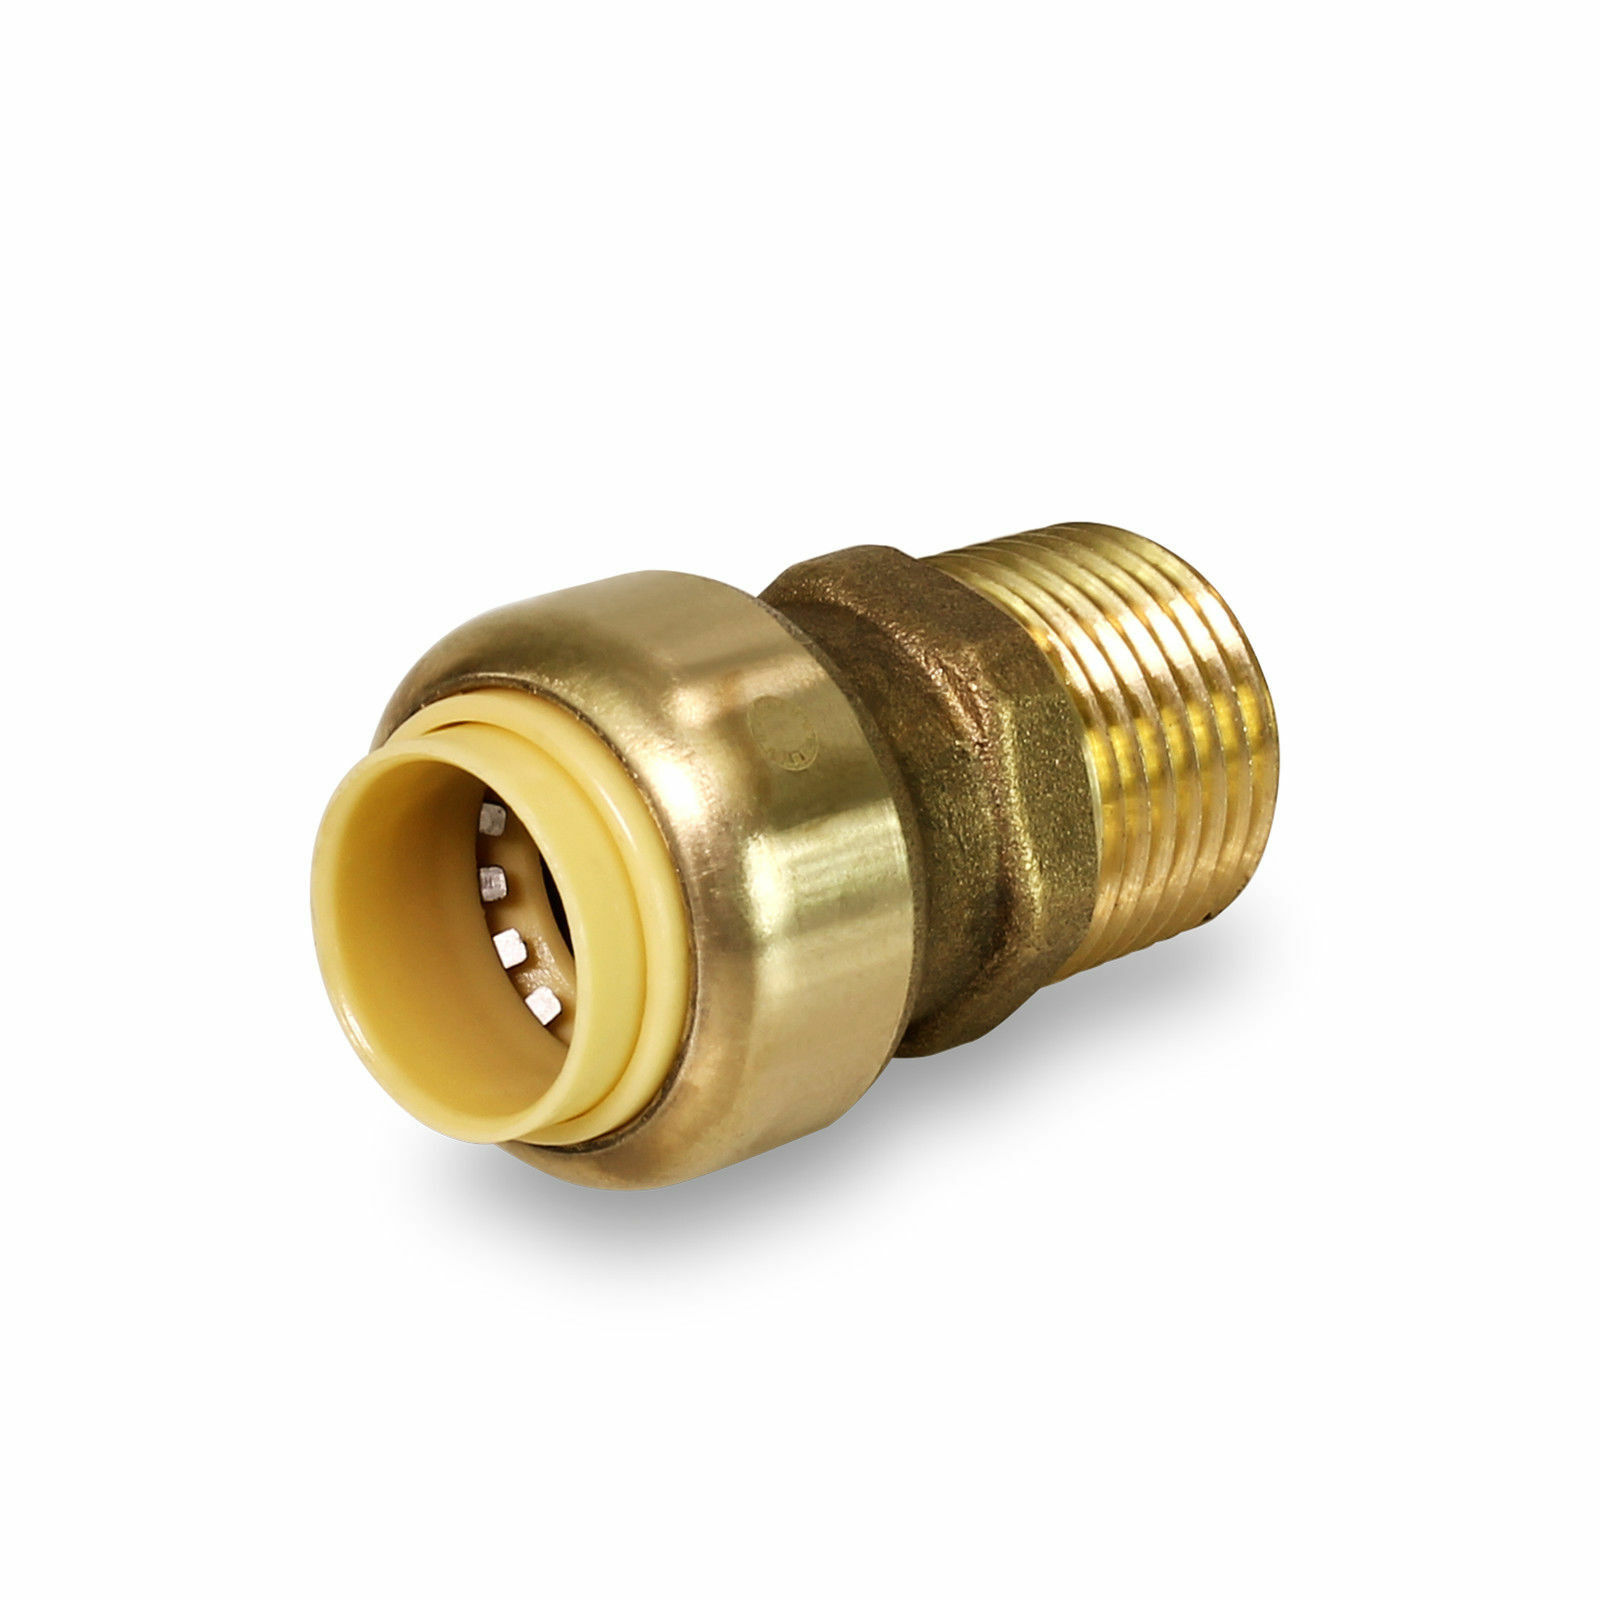 "1/"" SHARKBITE STYLE PUSH FIT 1/"" MALE THREADED ADAPTERS"